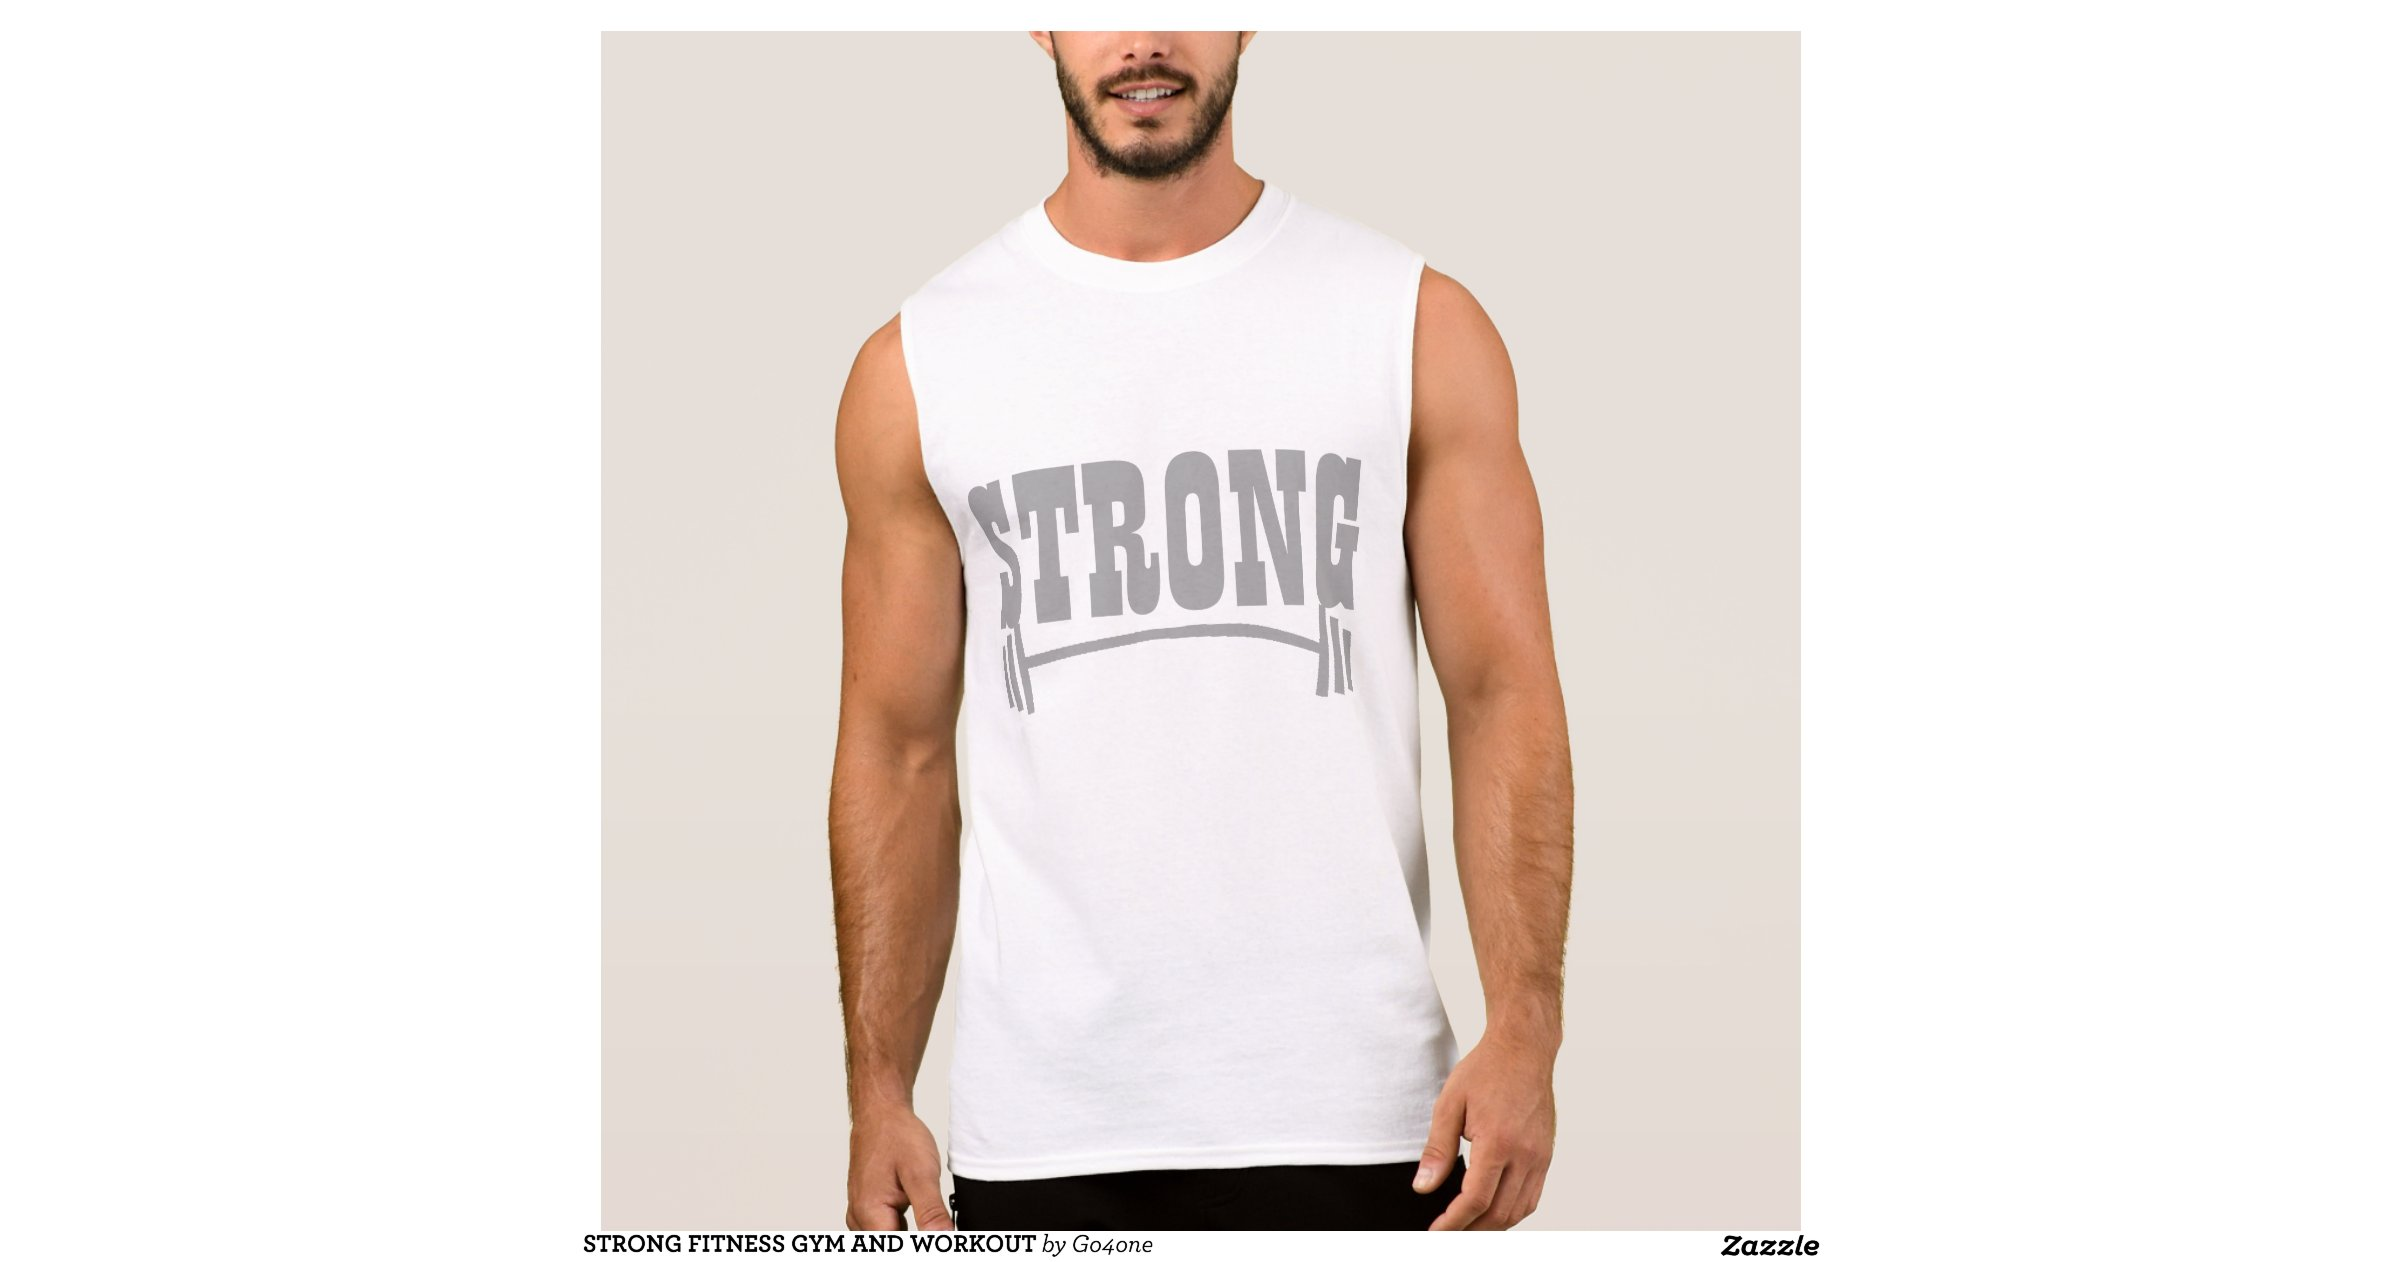 Strong fitness gym and workout sleeveless shirts zazzle for Design your own workout shirt